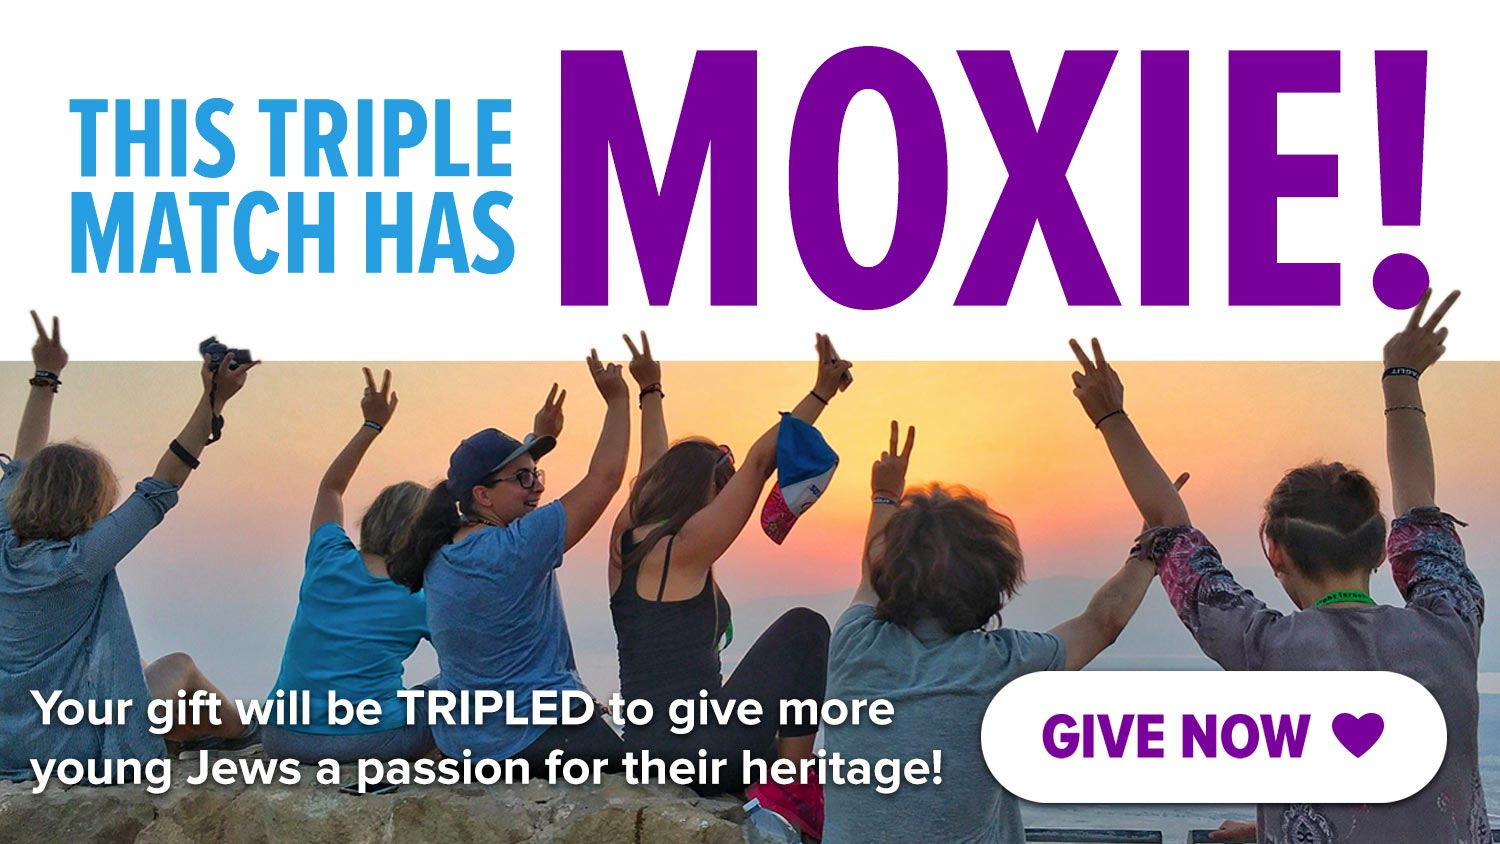 This triple match has MOXIE! Your gift will be TRIPLED to give more young Jews a passion for their heritage!